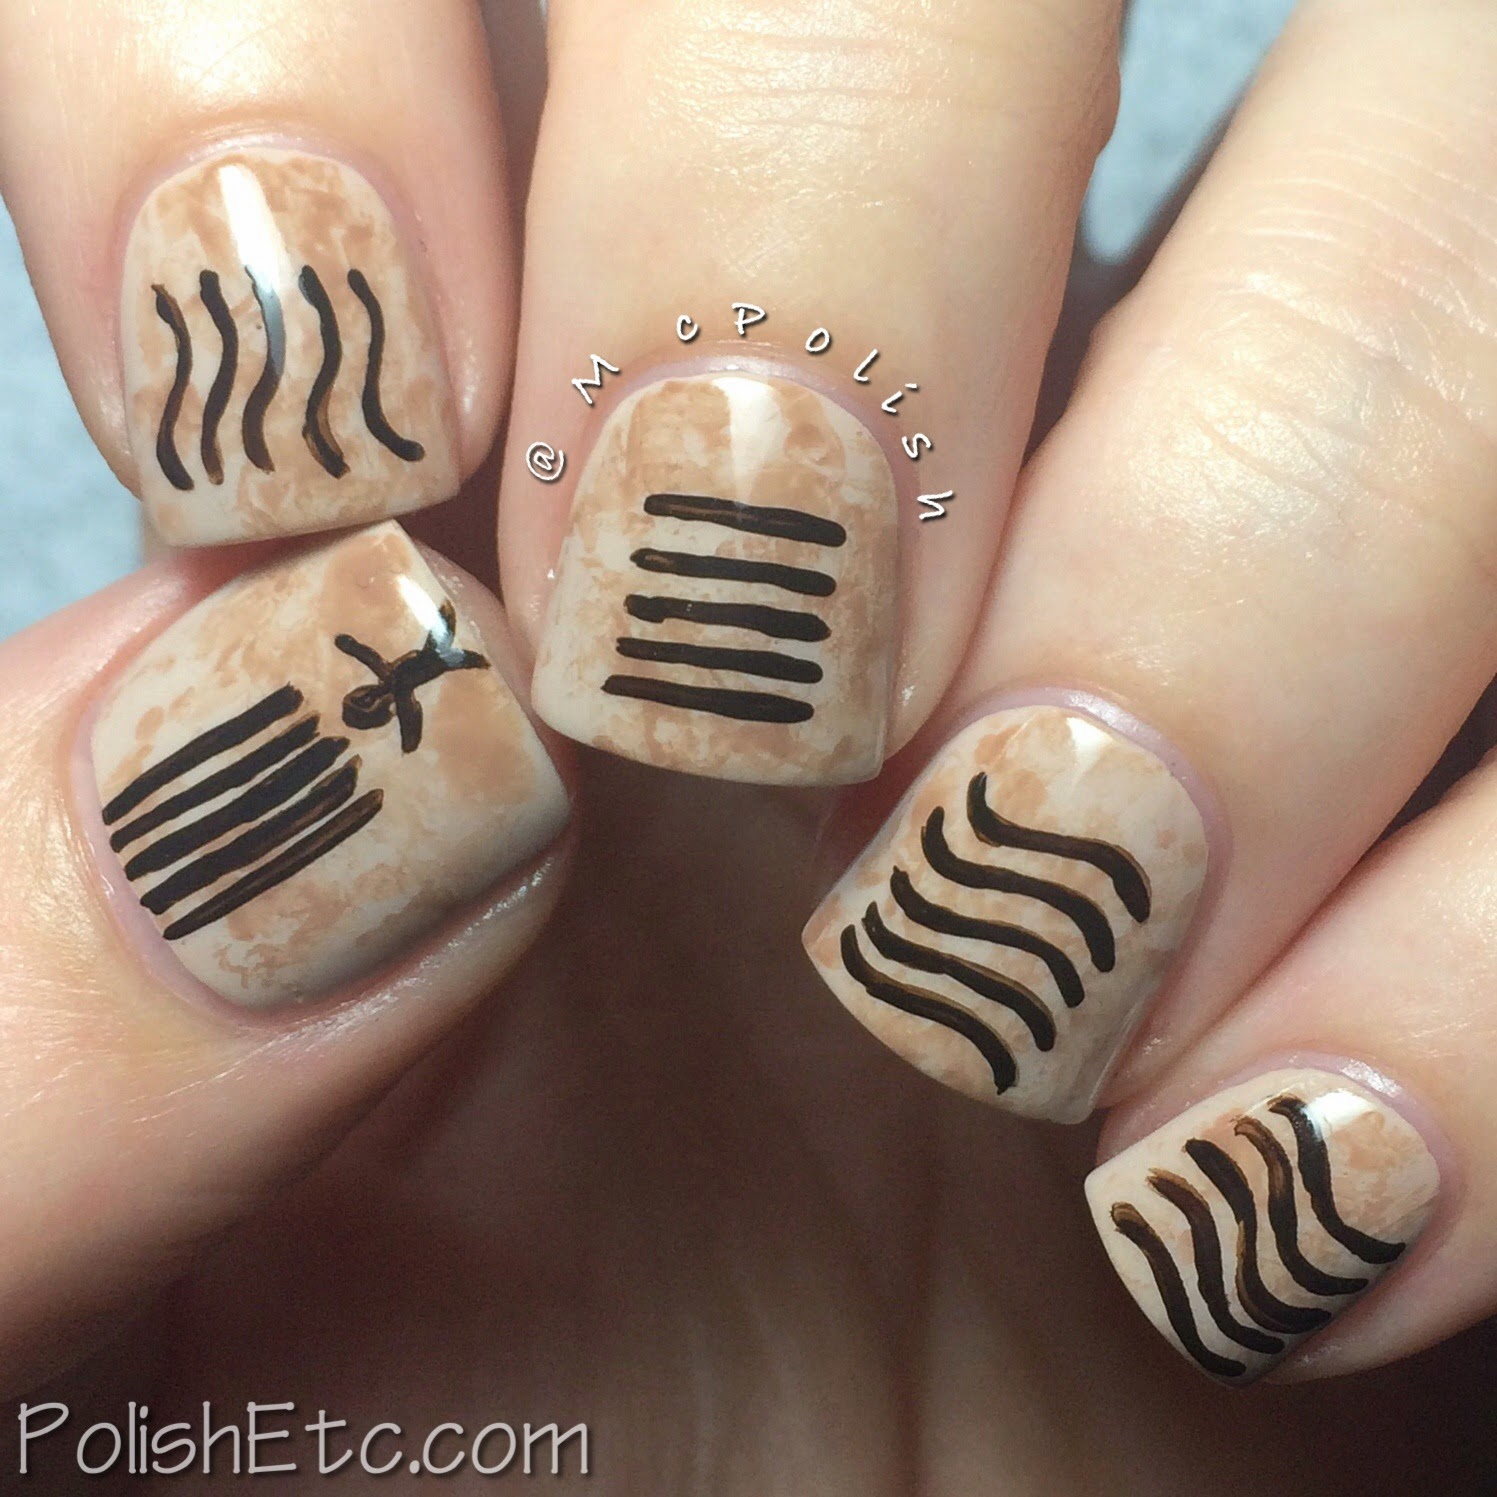 31 Day Nail Art Challenge -#31dc2014 - McPolish - MOVIE